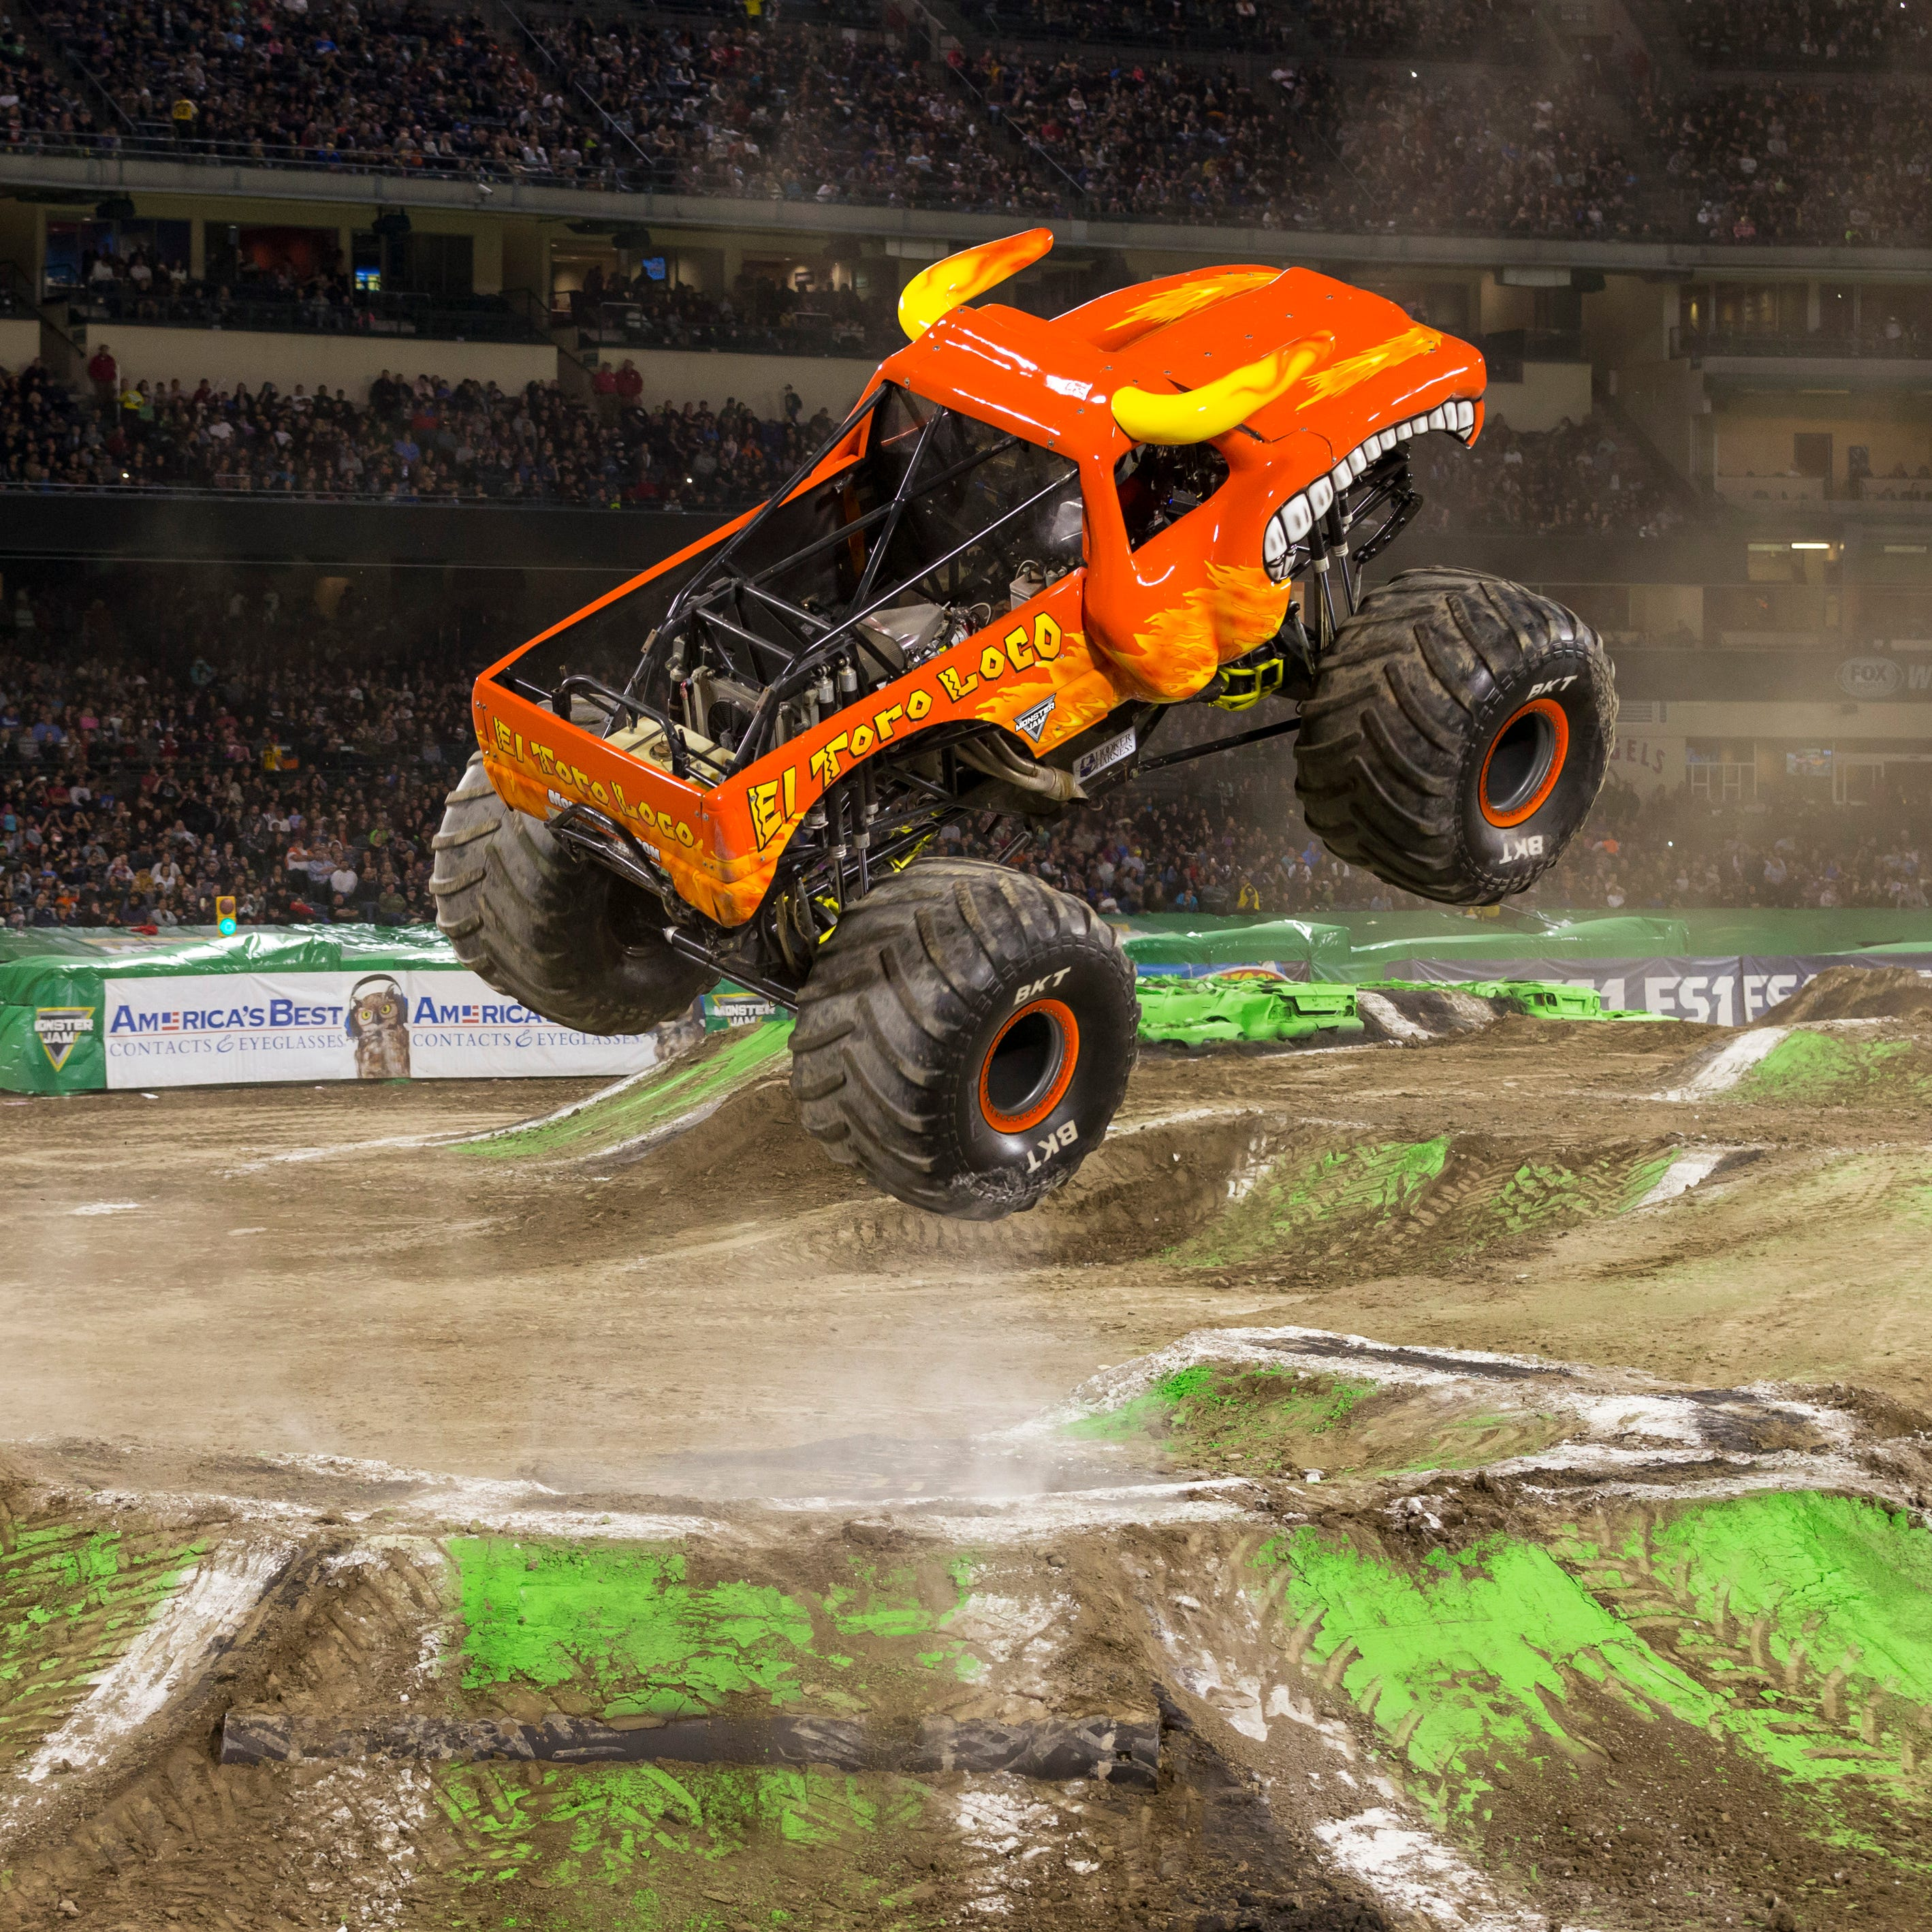 11 things to do in Milwaukee this weekend, from monster trucks to ice bars to Gallery Night